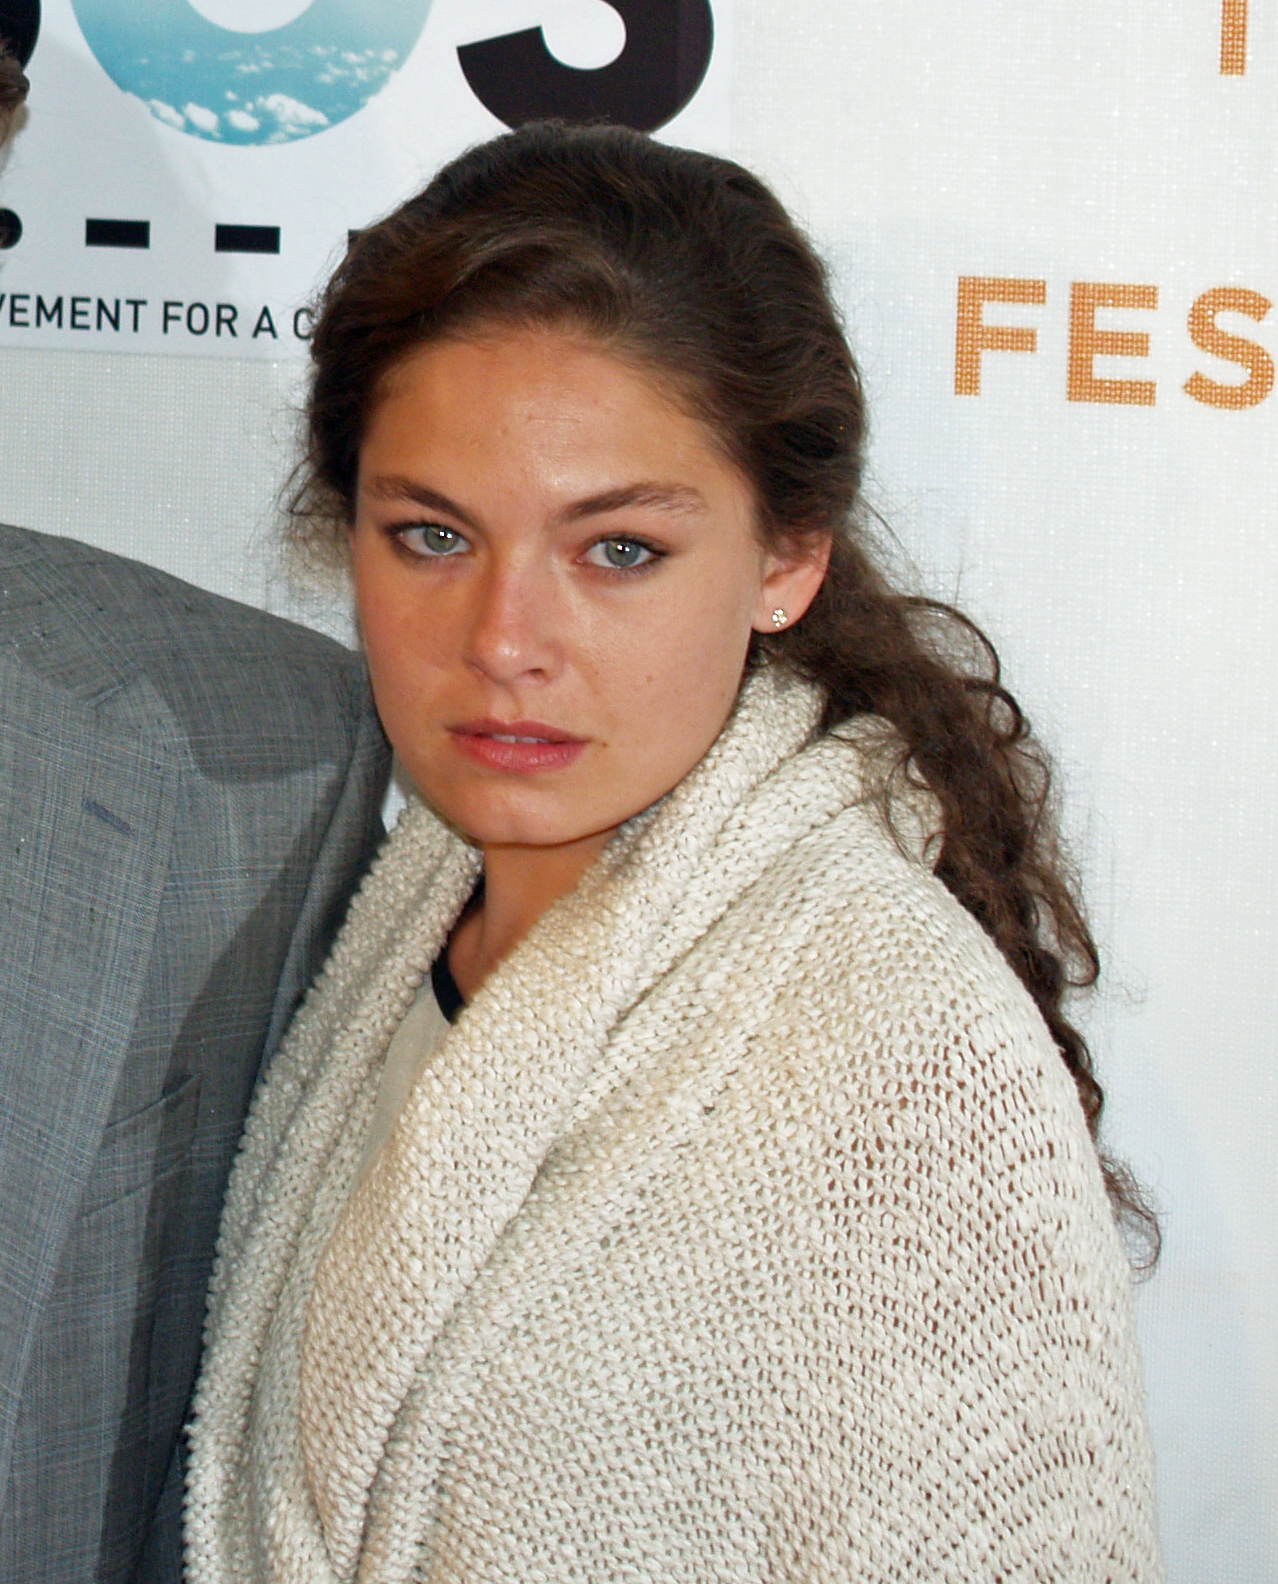 The 38-year old daughter of father (?) and mother(?) Alexa Davalos in 2020 photo. Alexa Davalos earned a million dollar salary - leaving the net worth at 4 million in 2020